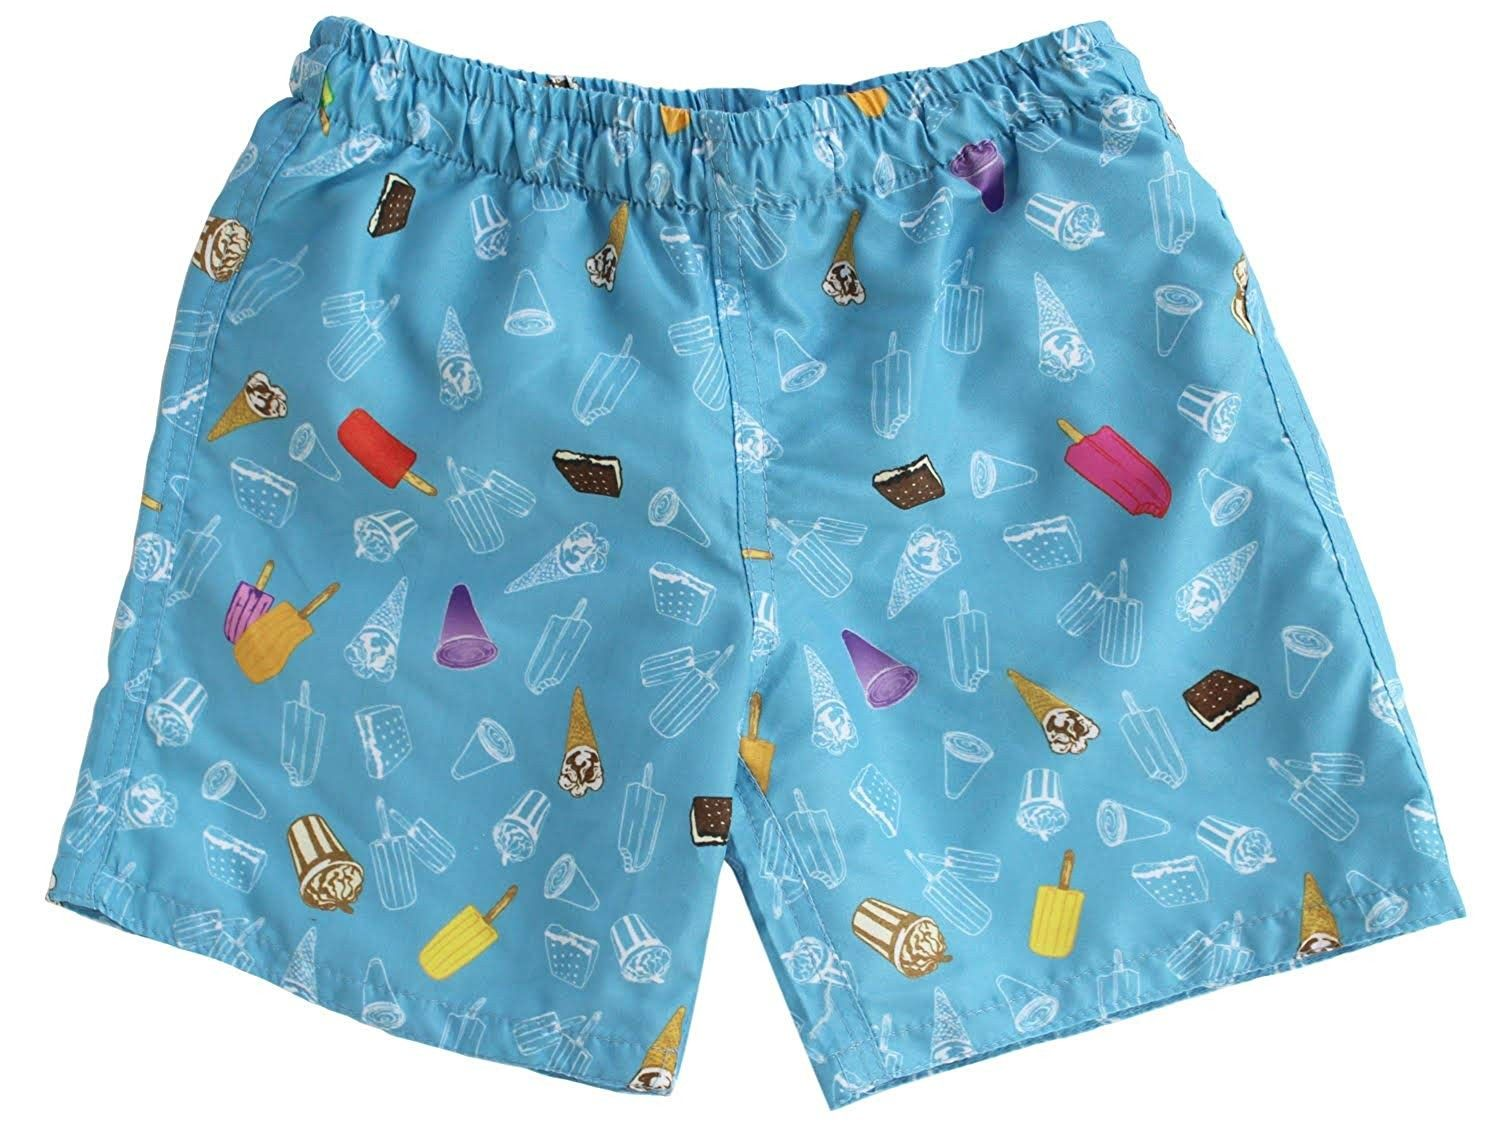 Mens Ice Cream Colorful Pattern Swim Trunks Boardshorts with Pokets Beach Shorts